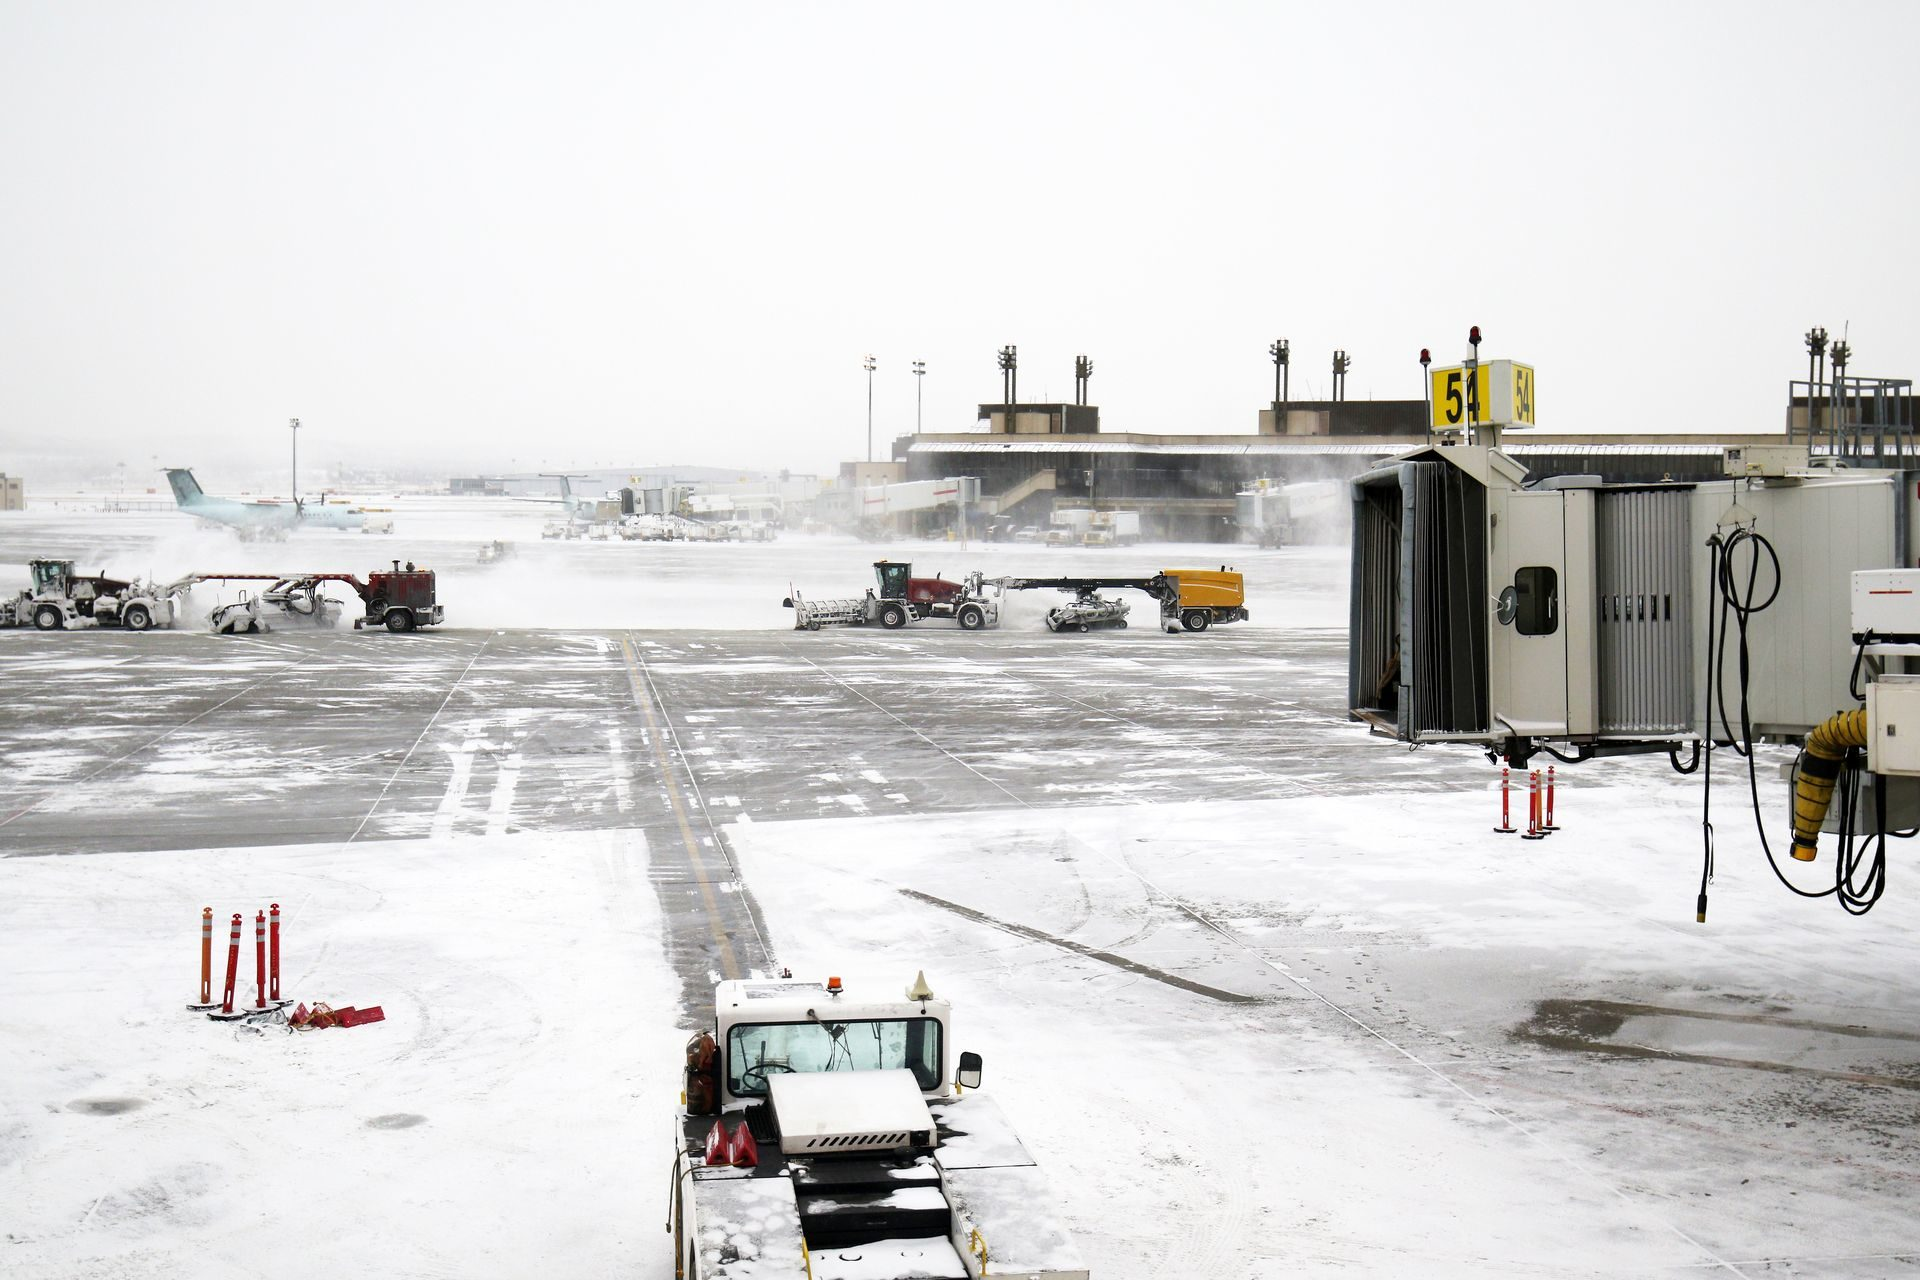 Heavy snowstorms cancel flights across the USA, April 10, 2019